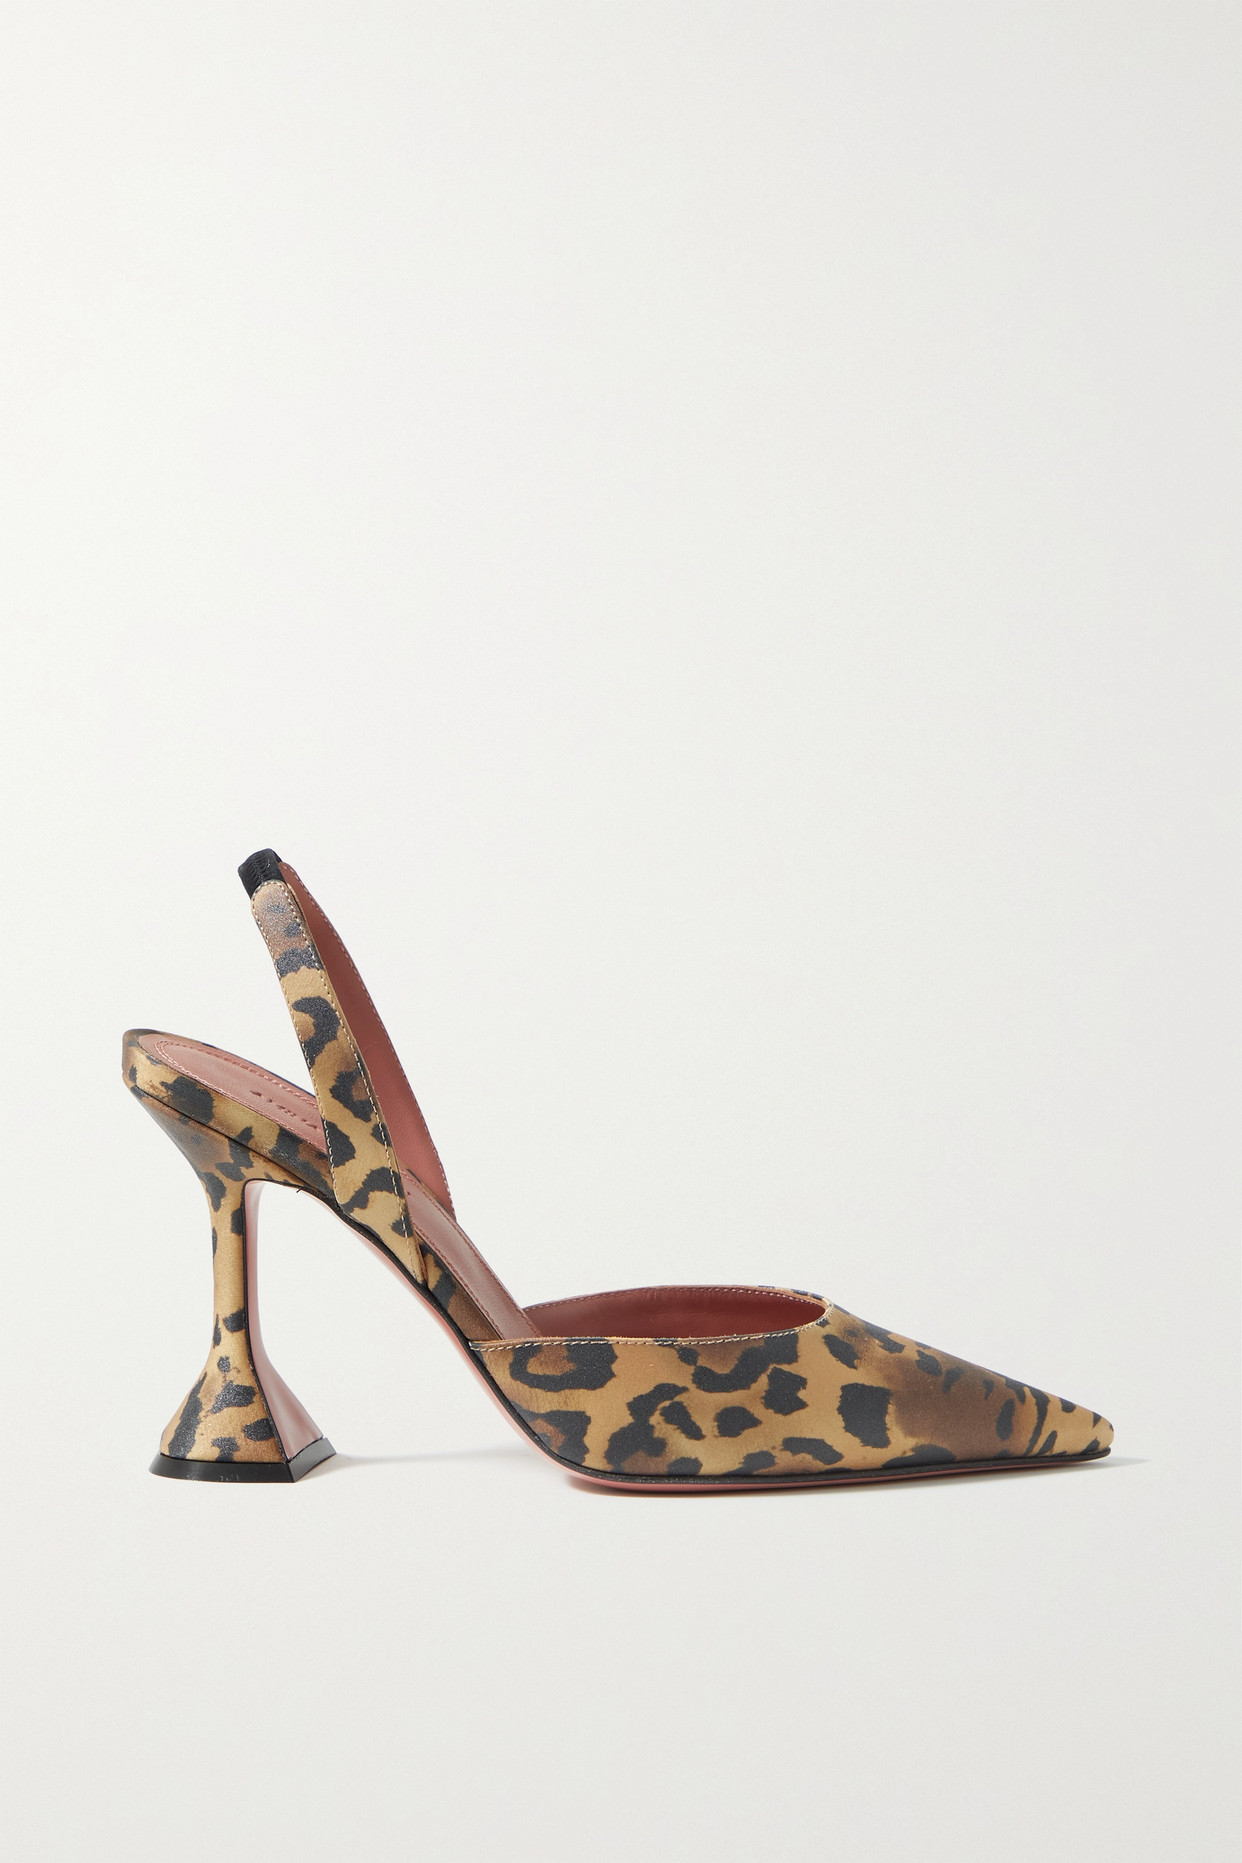 AMINA MUADDI - Holli Leopard-print Satin Slingback Pumps - Animal print - IT36.5